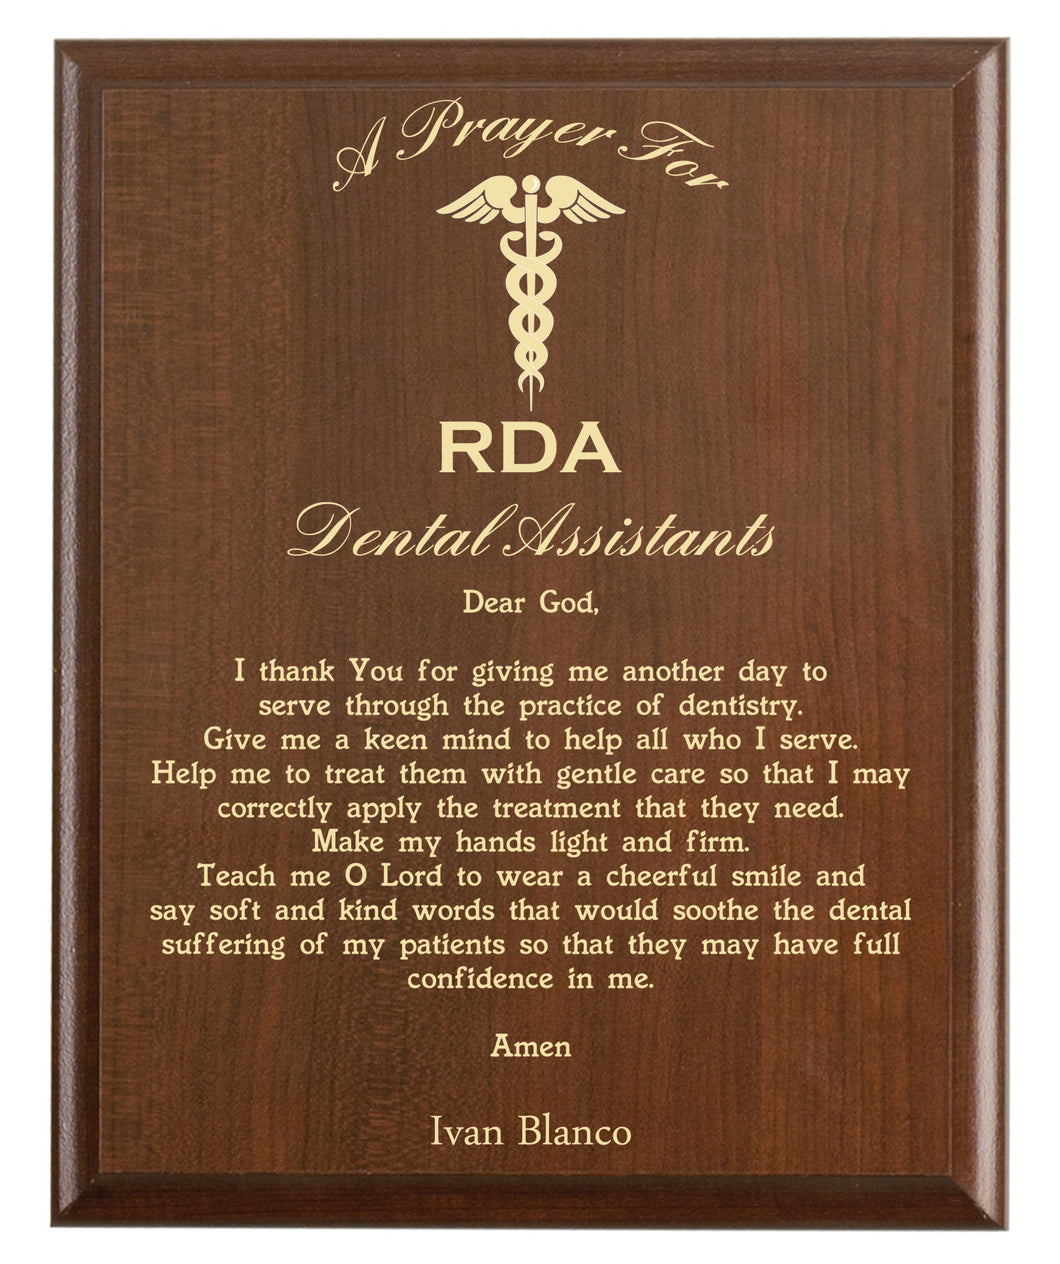 Christian prayer for a dental assistant with industry logo and free personalization. Cherry finish with laser engraved text.